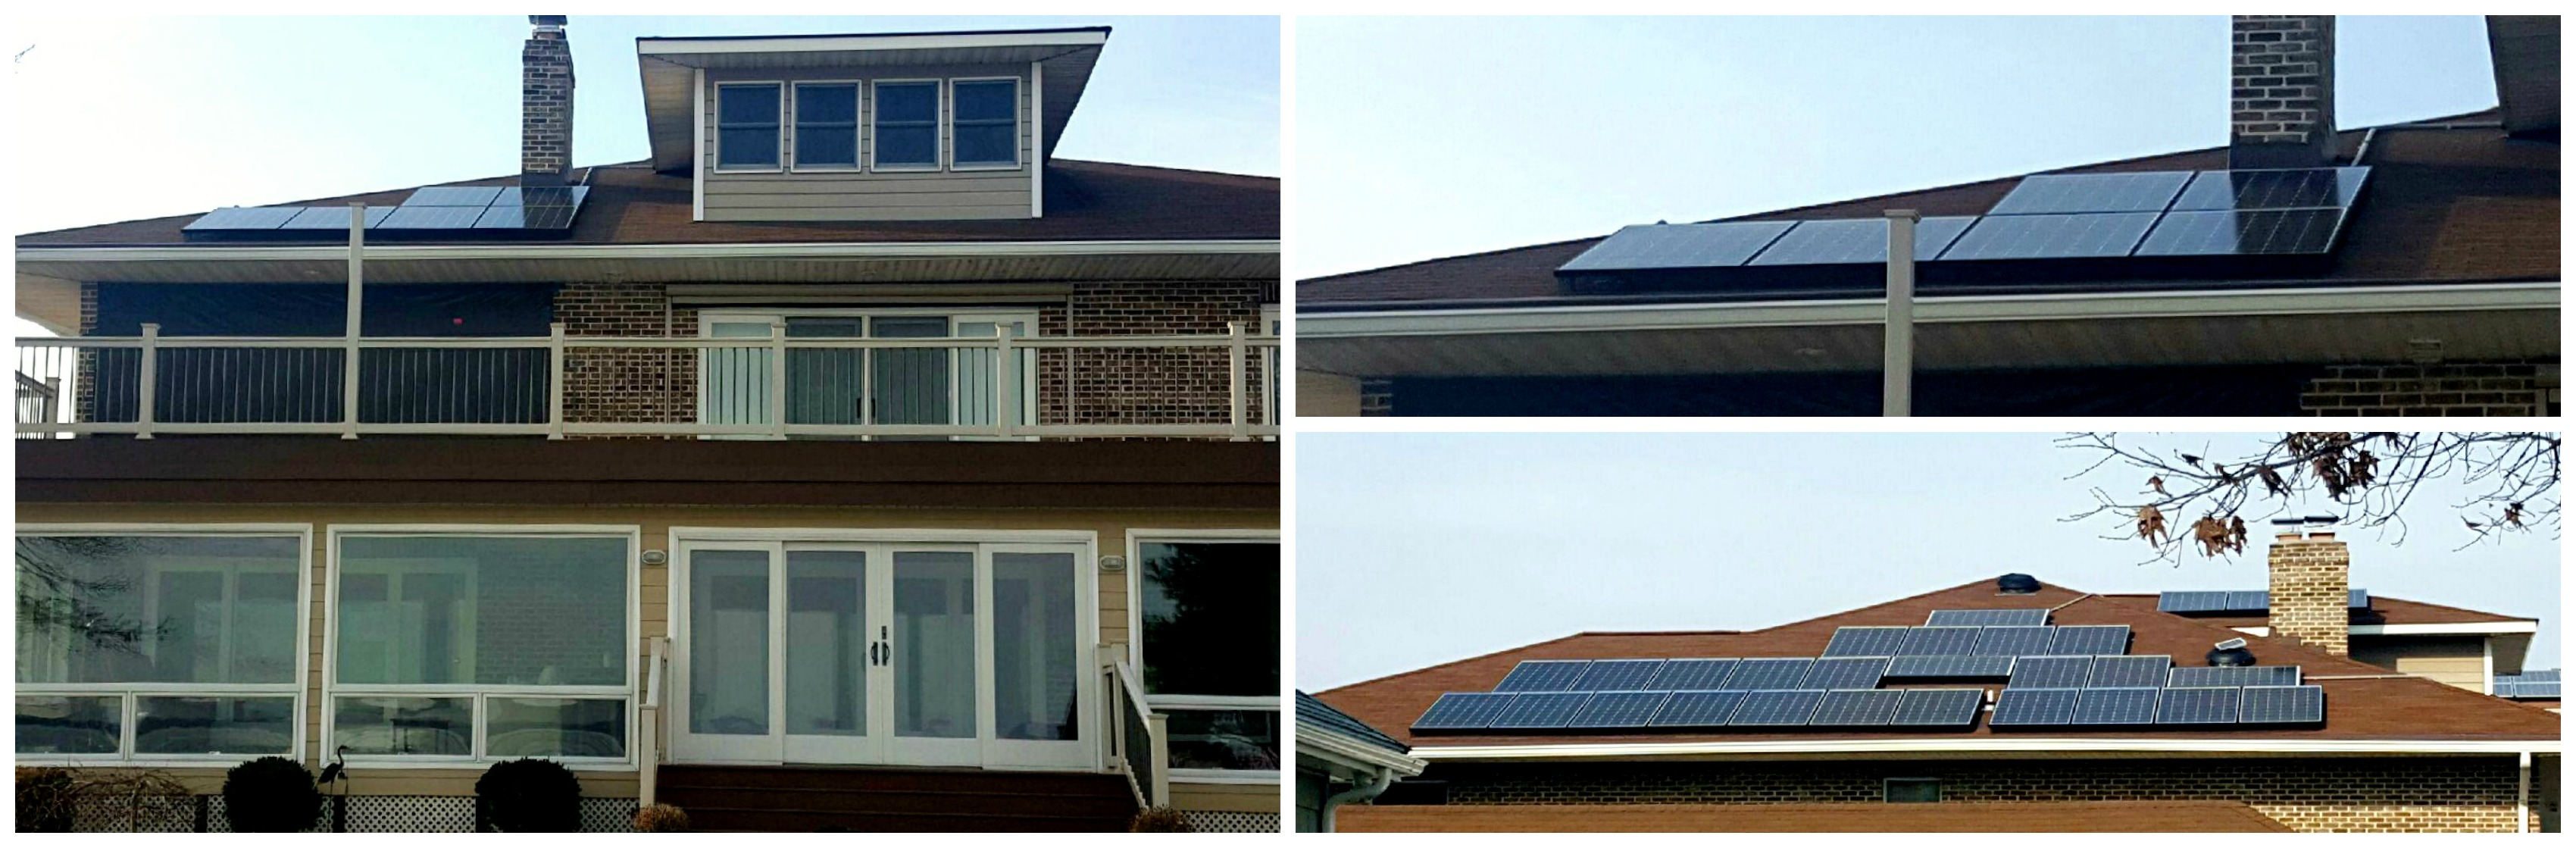 Residential Solar Panel Installation For A Home In Middle